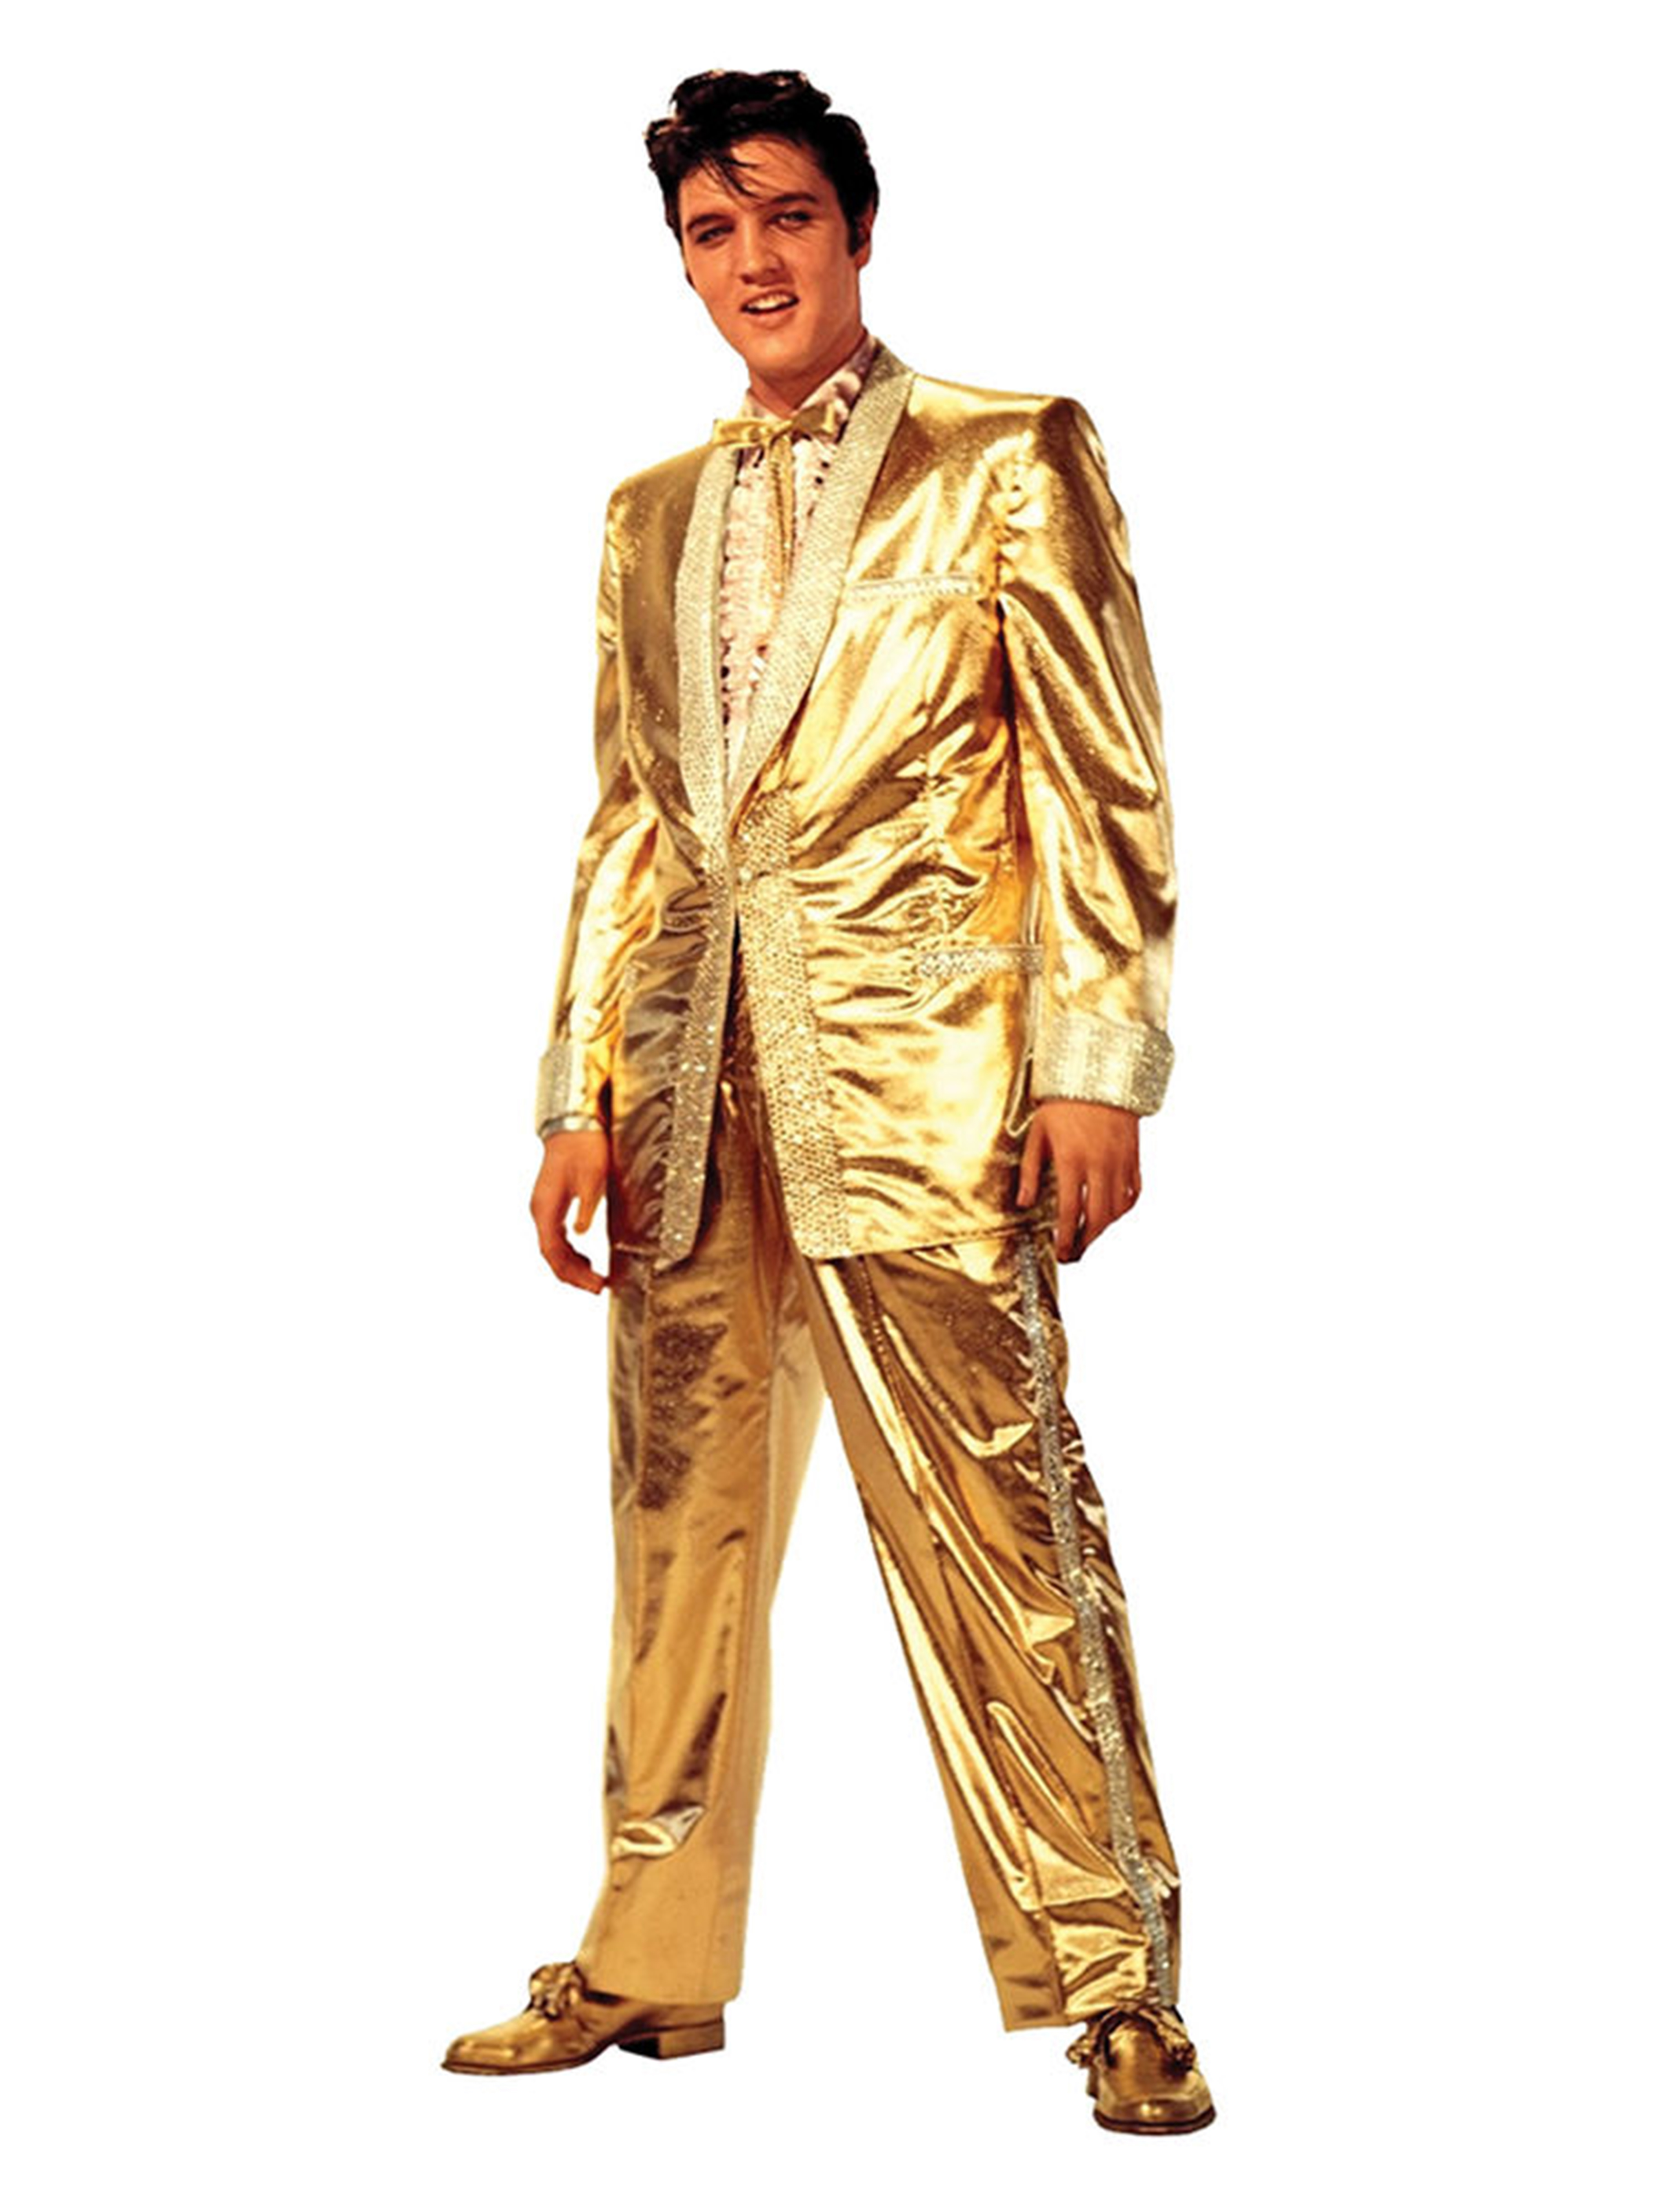 Elvis in Gold Lame Suit Cardboard Cutout